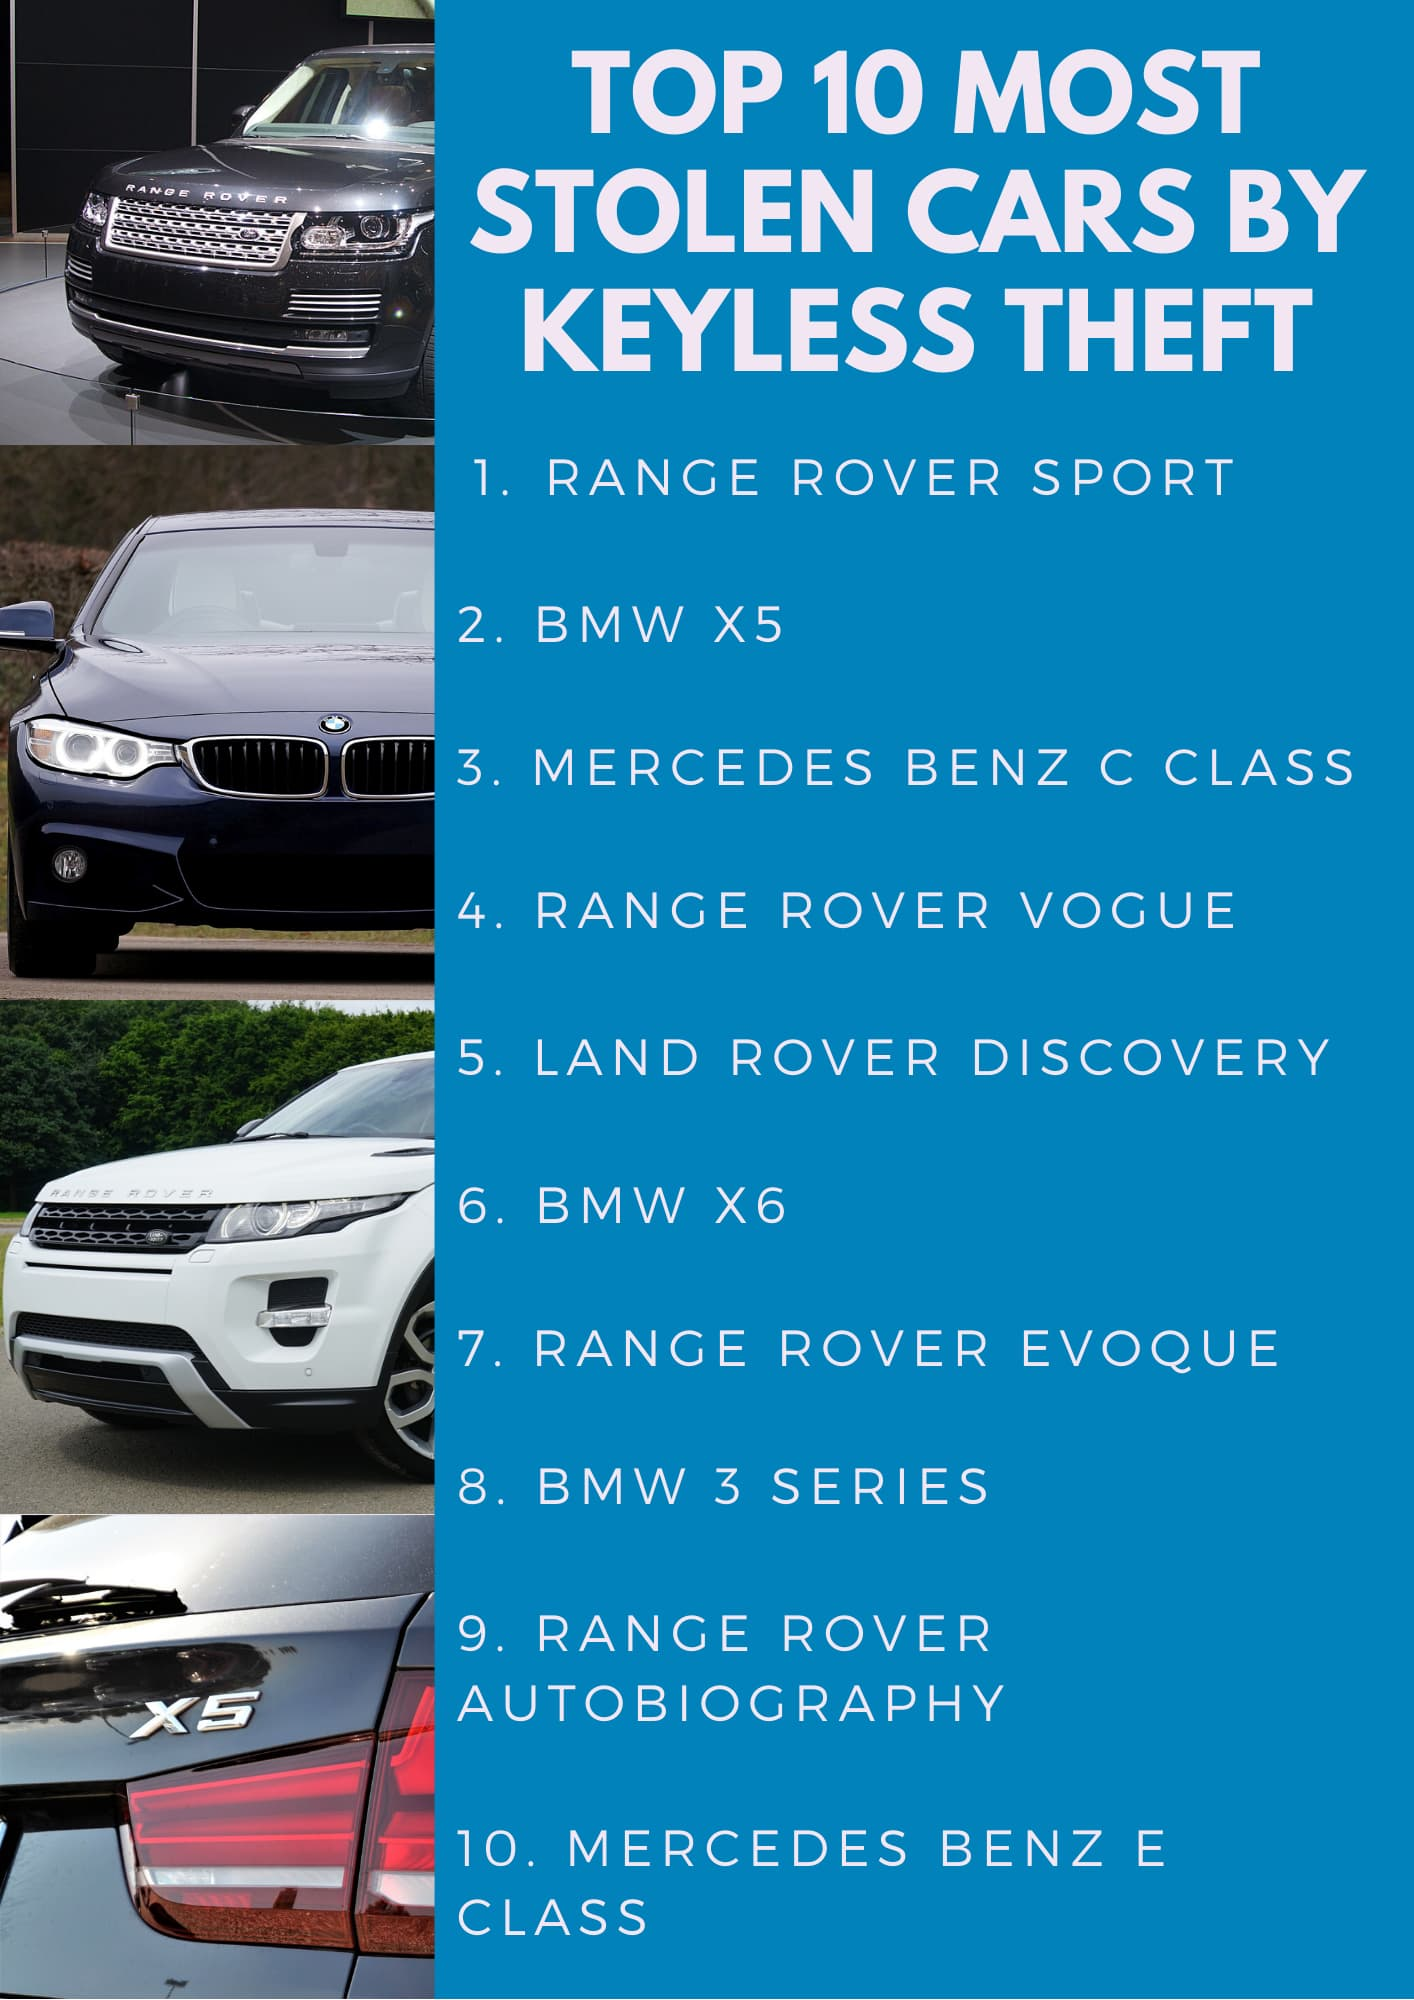 keyless entry car thefts UK 2019